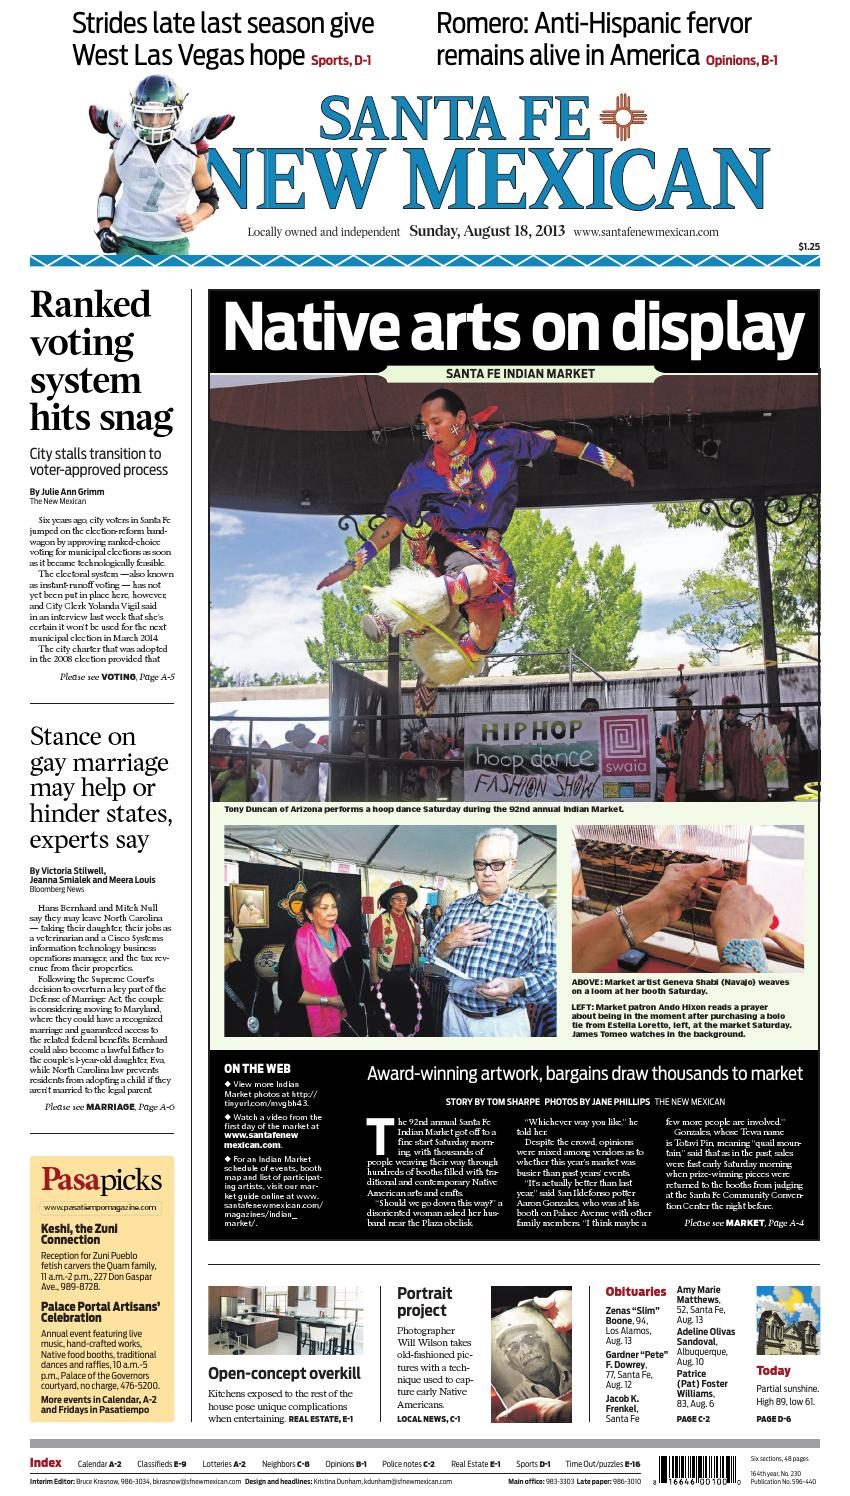 Santa Fe New Mexican, Aug. 18, 2013 by The New Mexican - issuu